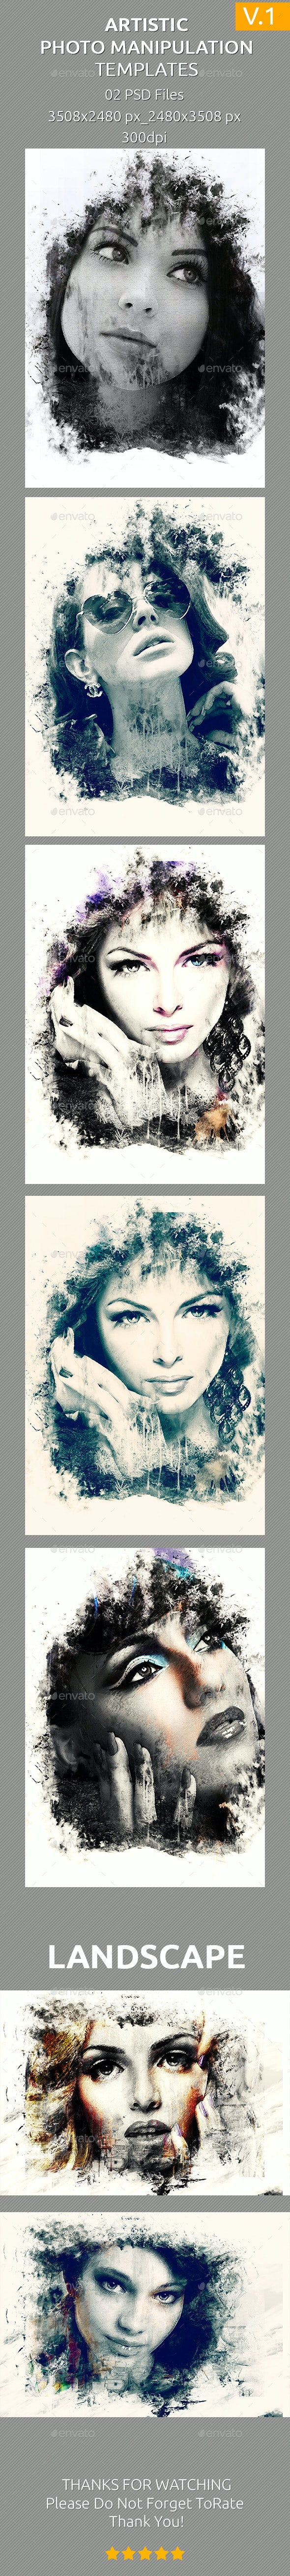 Artistic Photo Manipulation Templates - Artistic Photo Templates